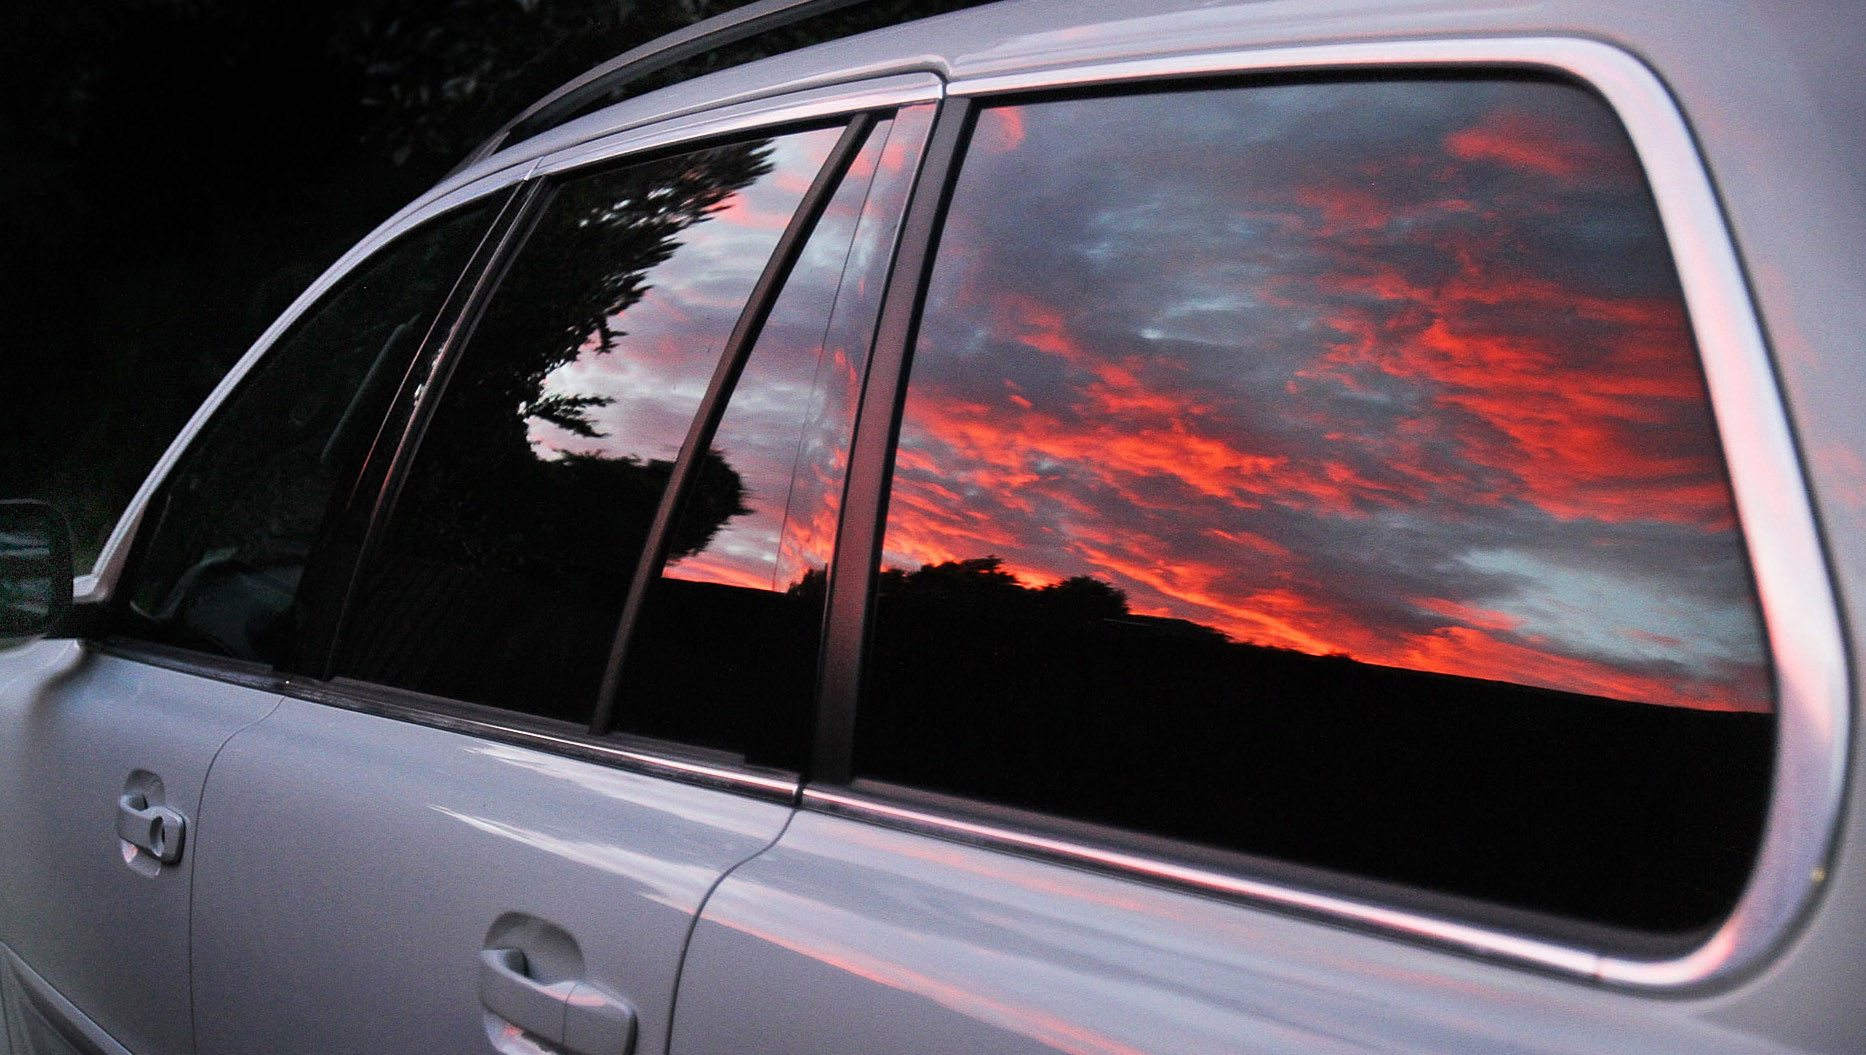 A dramatic sunrise sky is reflected in a car's windows on June 20, 2012.